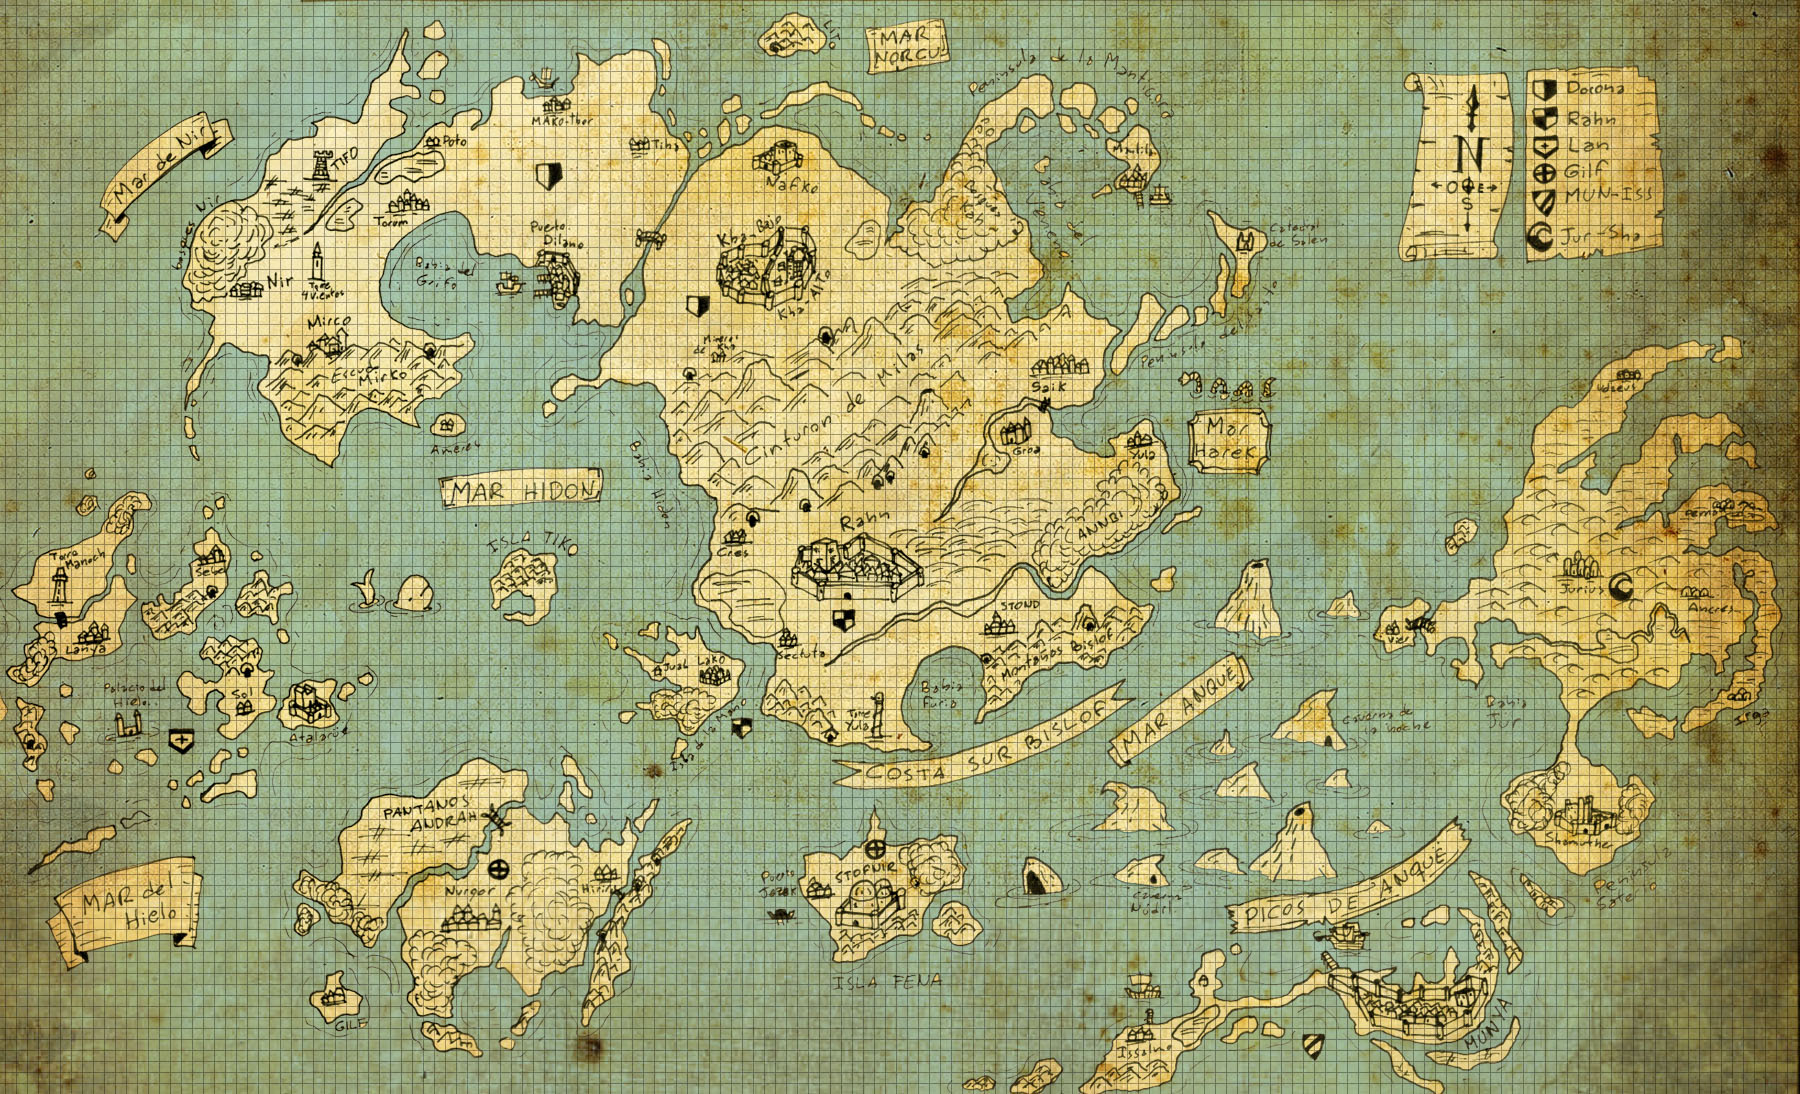 It is a graphic of Printable D&d Maps intended for custom